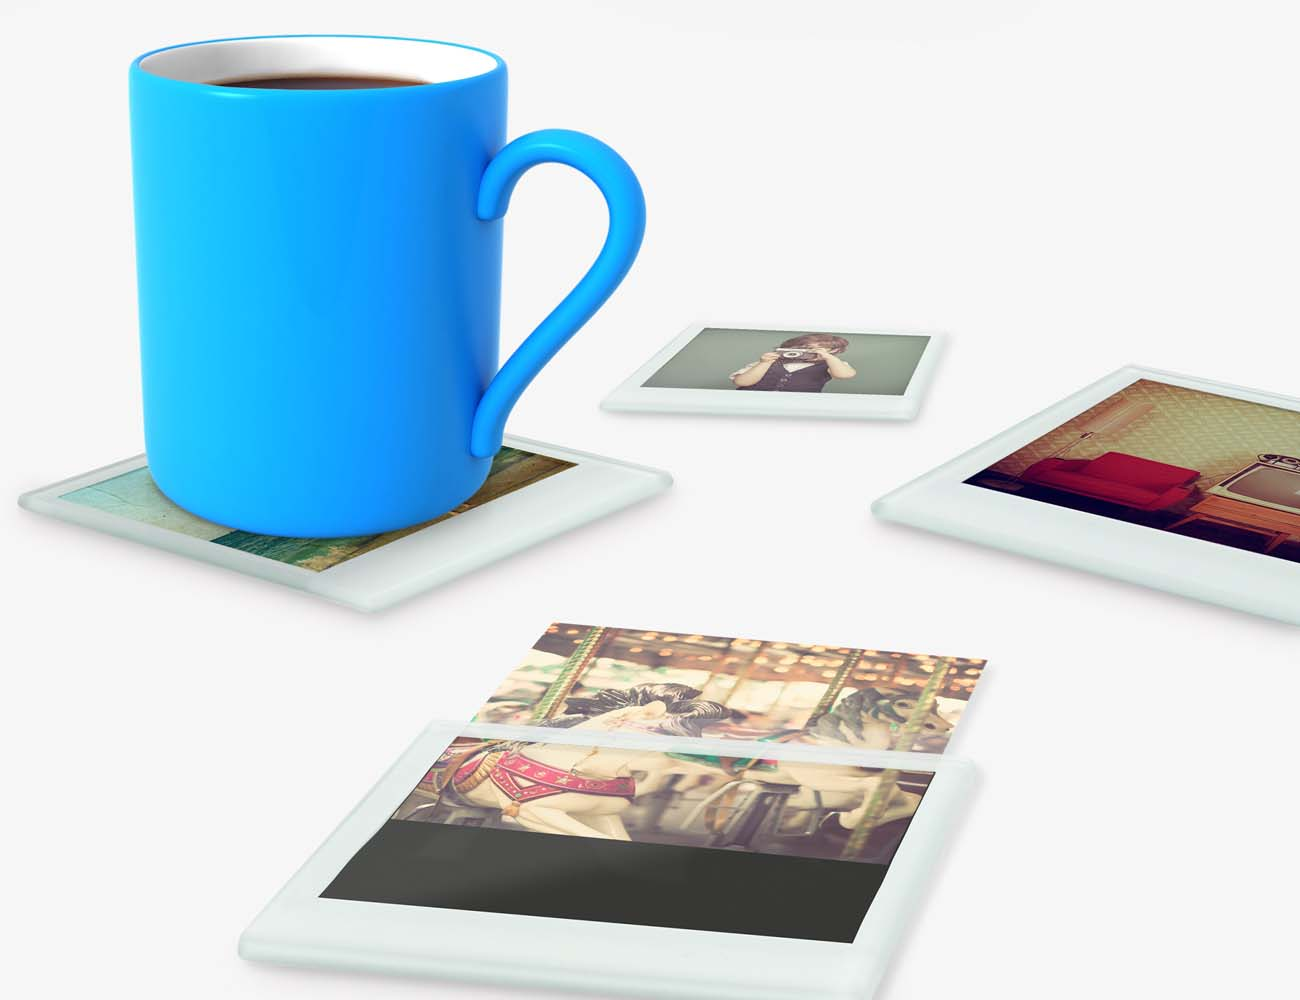 Instant+Photo+Coasters+%26%238211%3B+With+Provision+To+Insert+Your+Photos